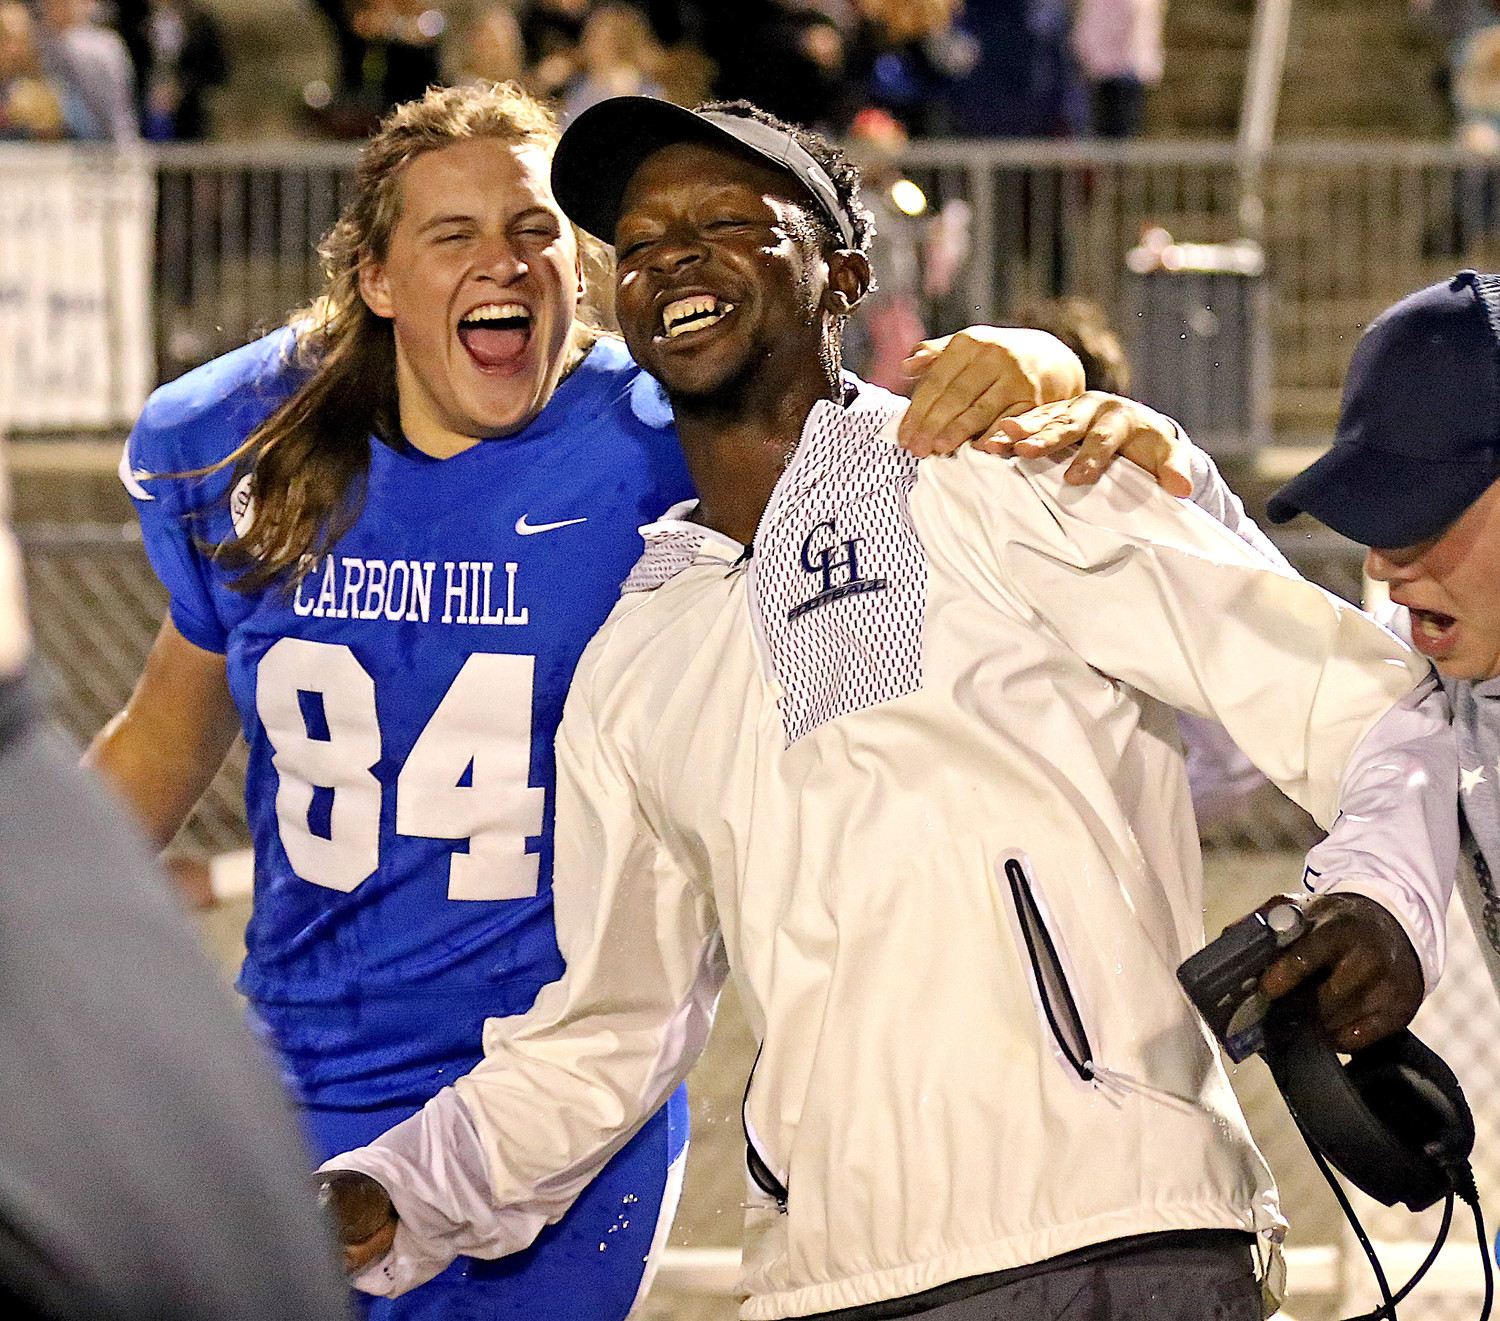 Carbon Hill coach Chavis Williams and senior Blake Garner celebrate the Bulldogs' 28-23 playoff-clinching win over Holt on Thursday night.